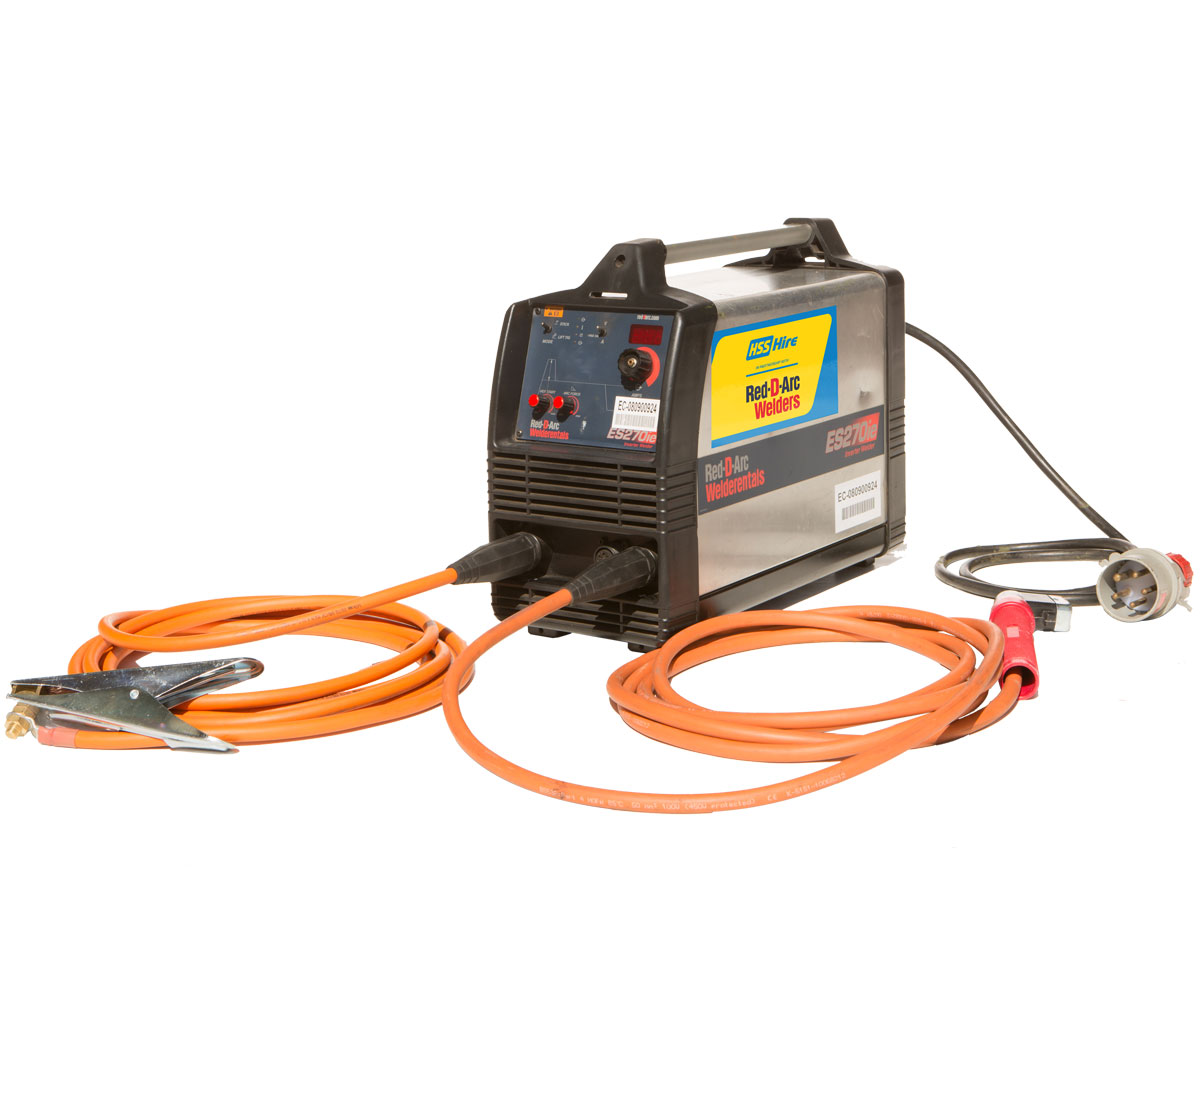 Red D'Arc 270 Amp Inverter Welder